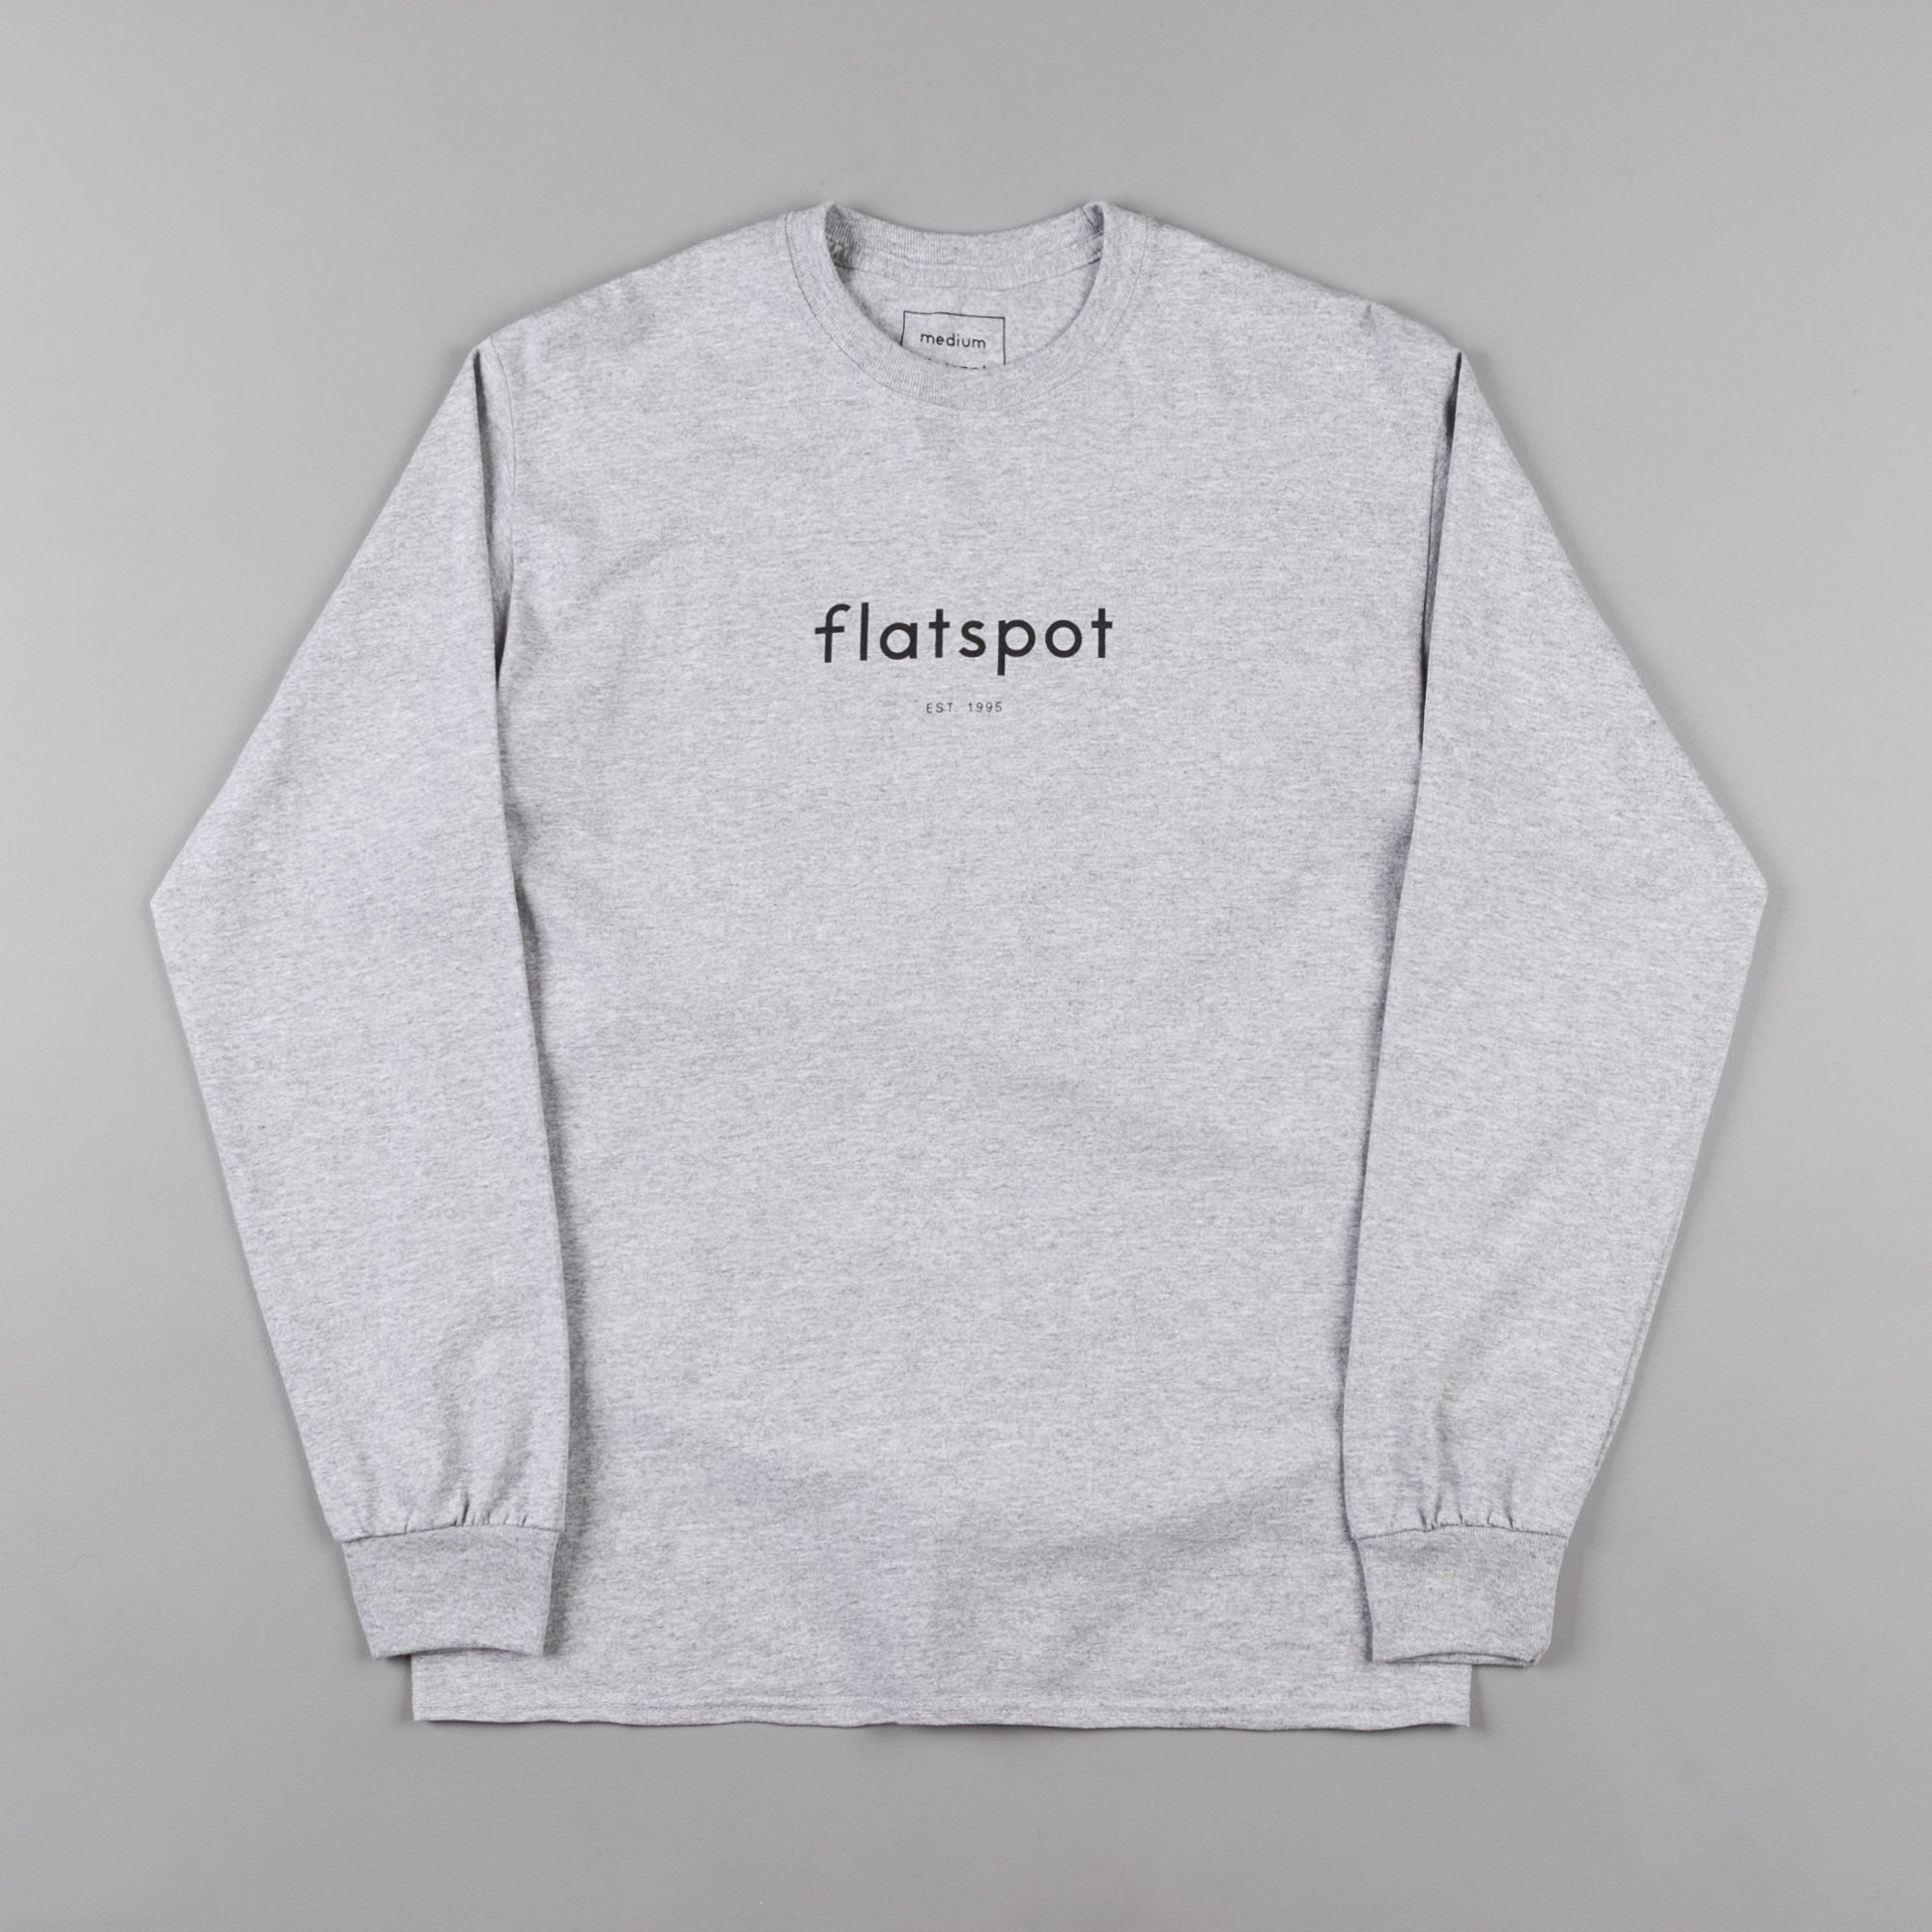 Flatspot 1995 Long Sleeve T-Shirt - Grey